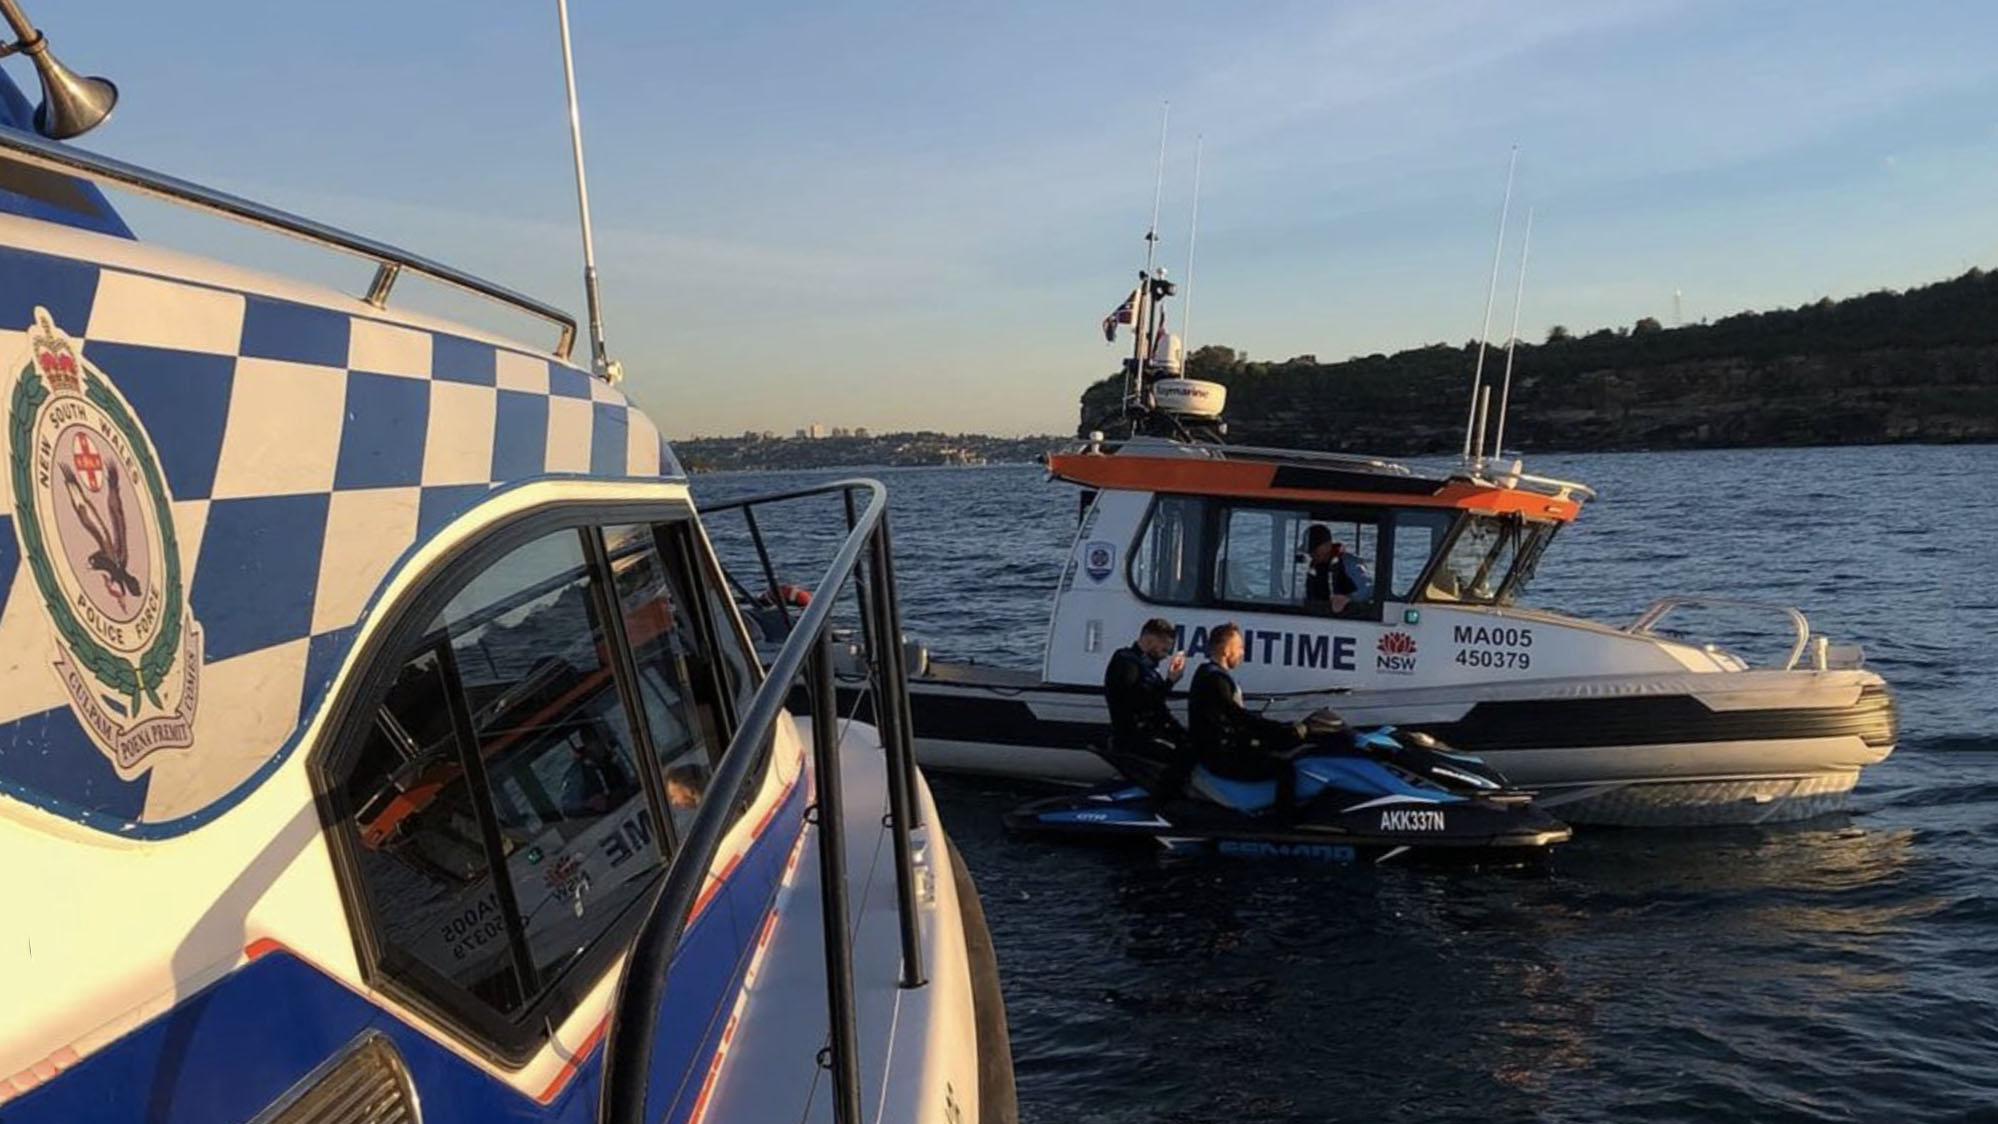 Jet Ski riders caught on Sydney Harbour 20 years after ban was introduced